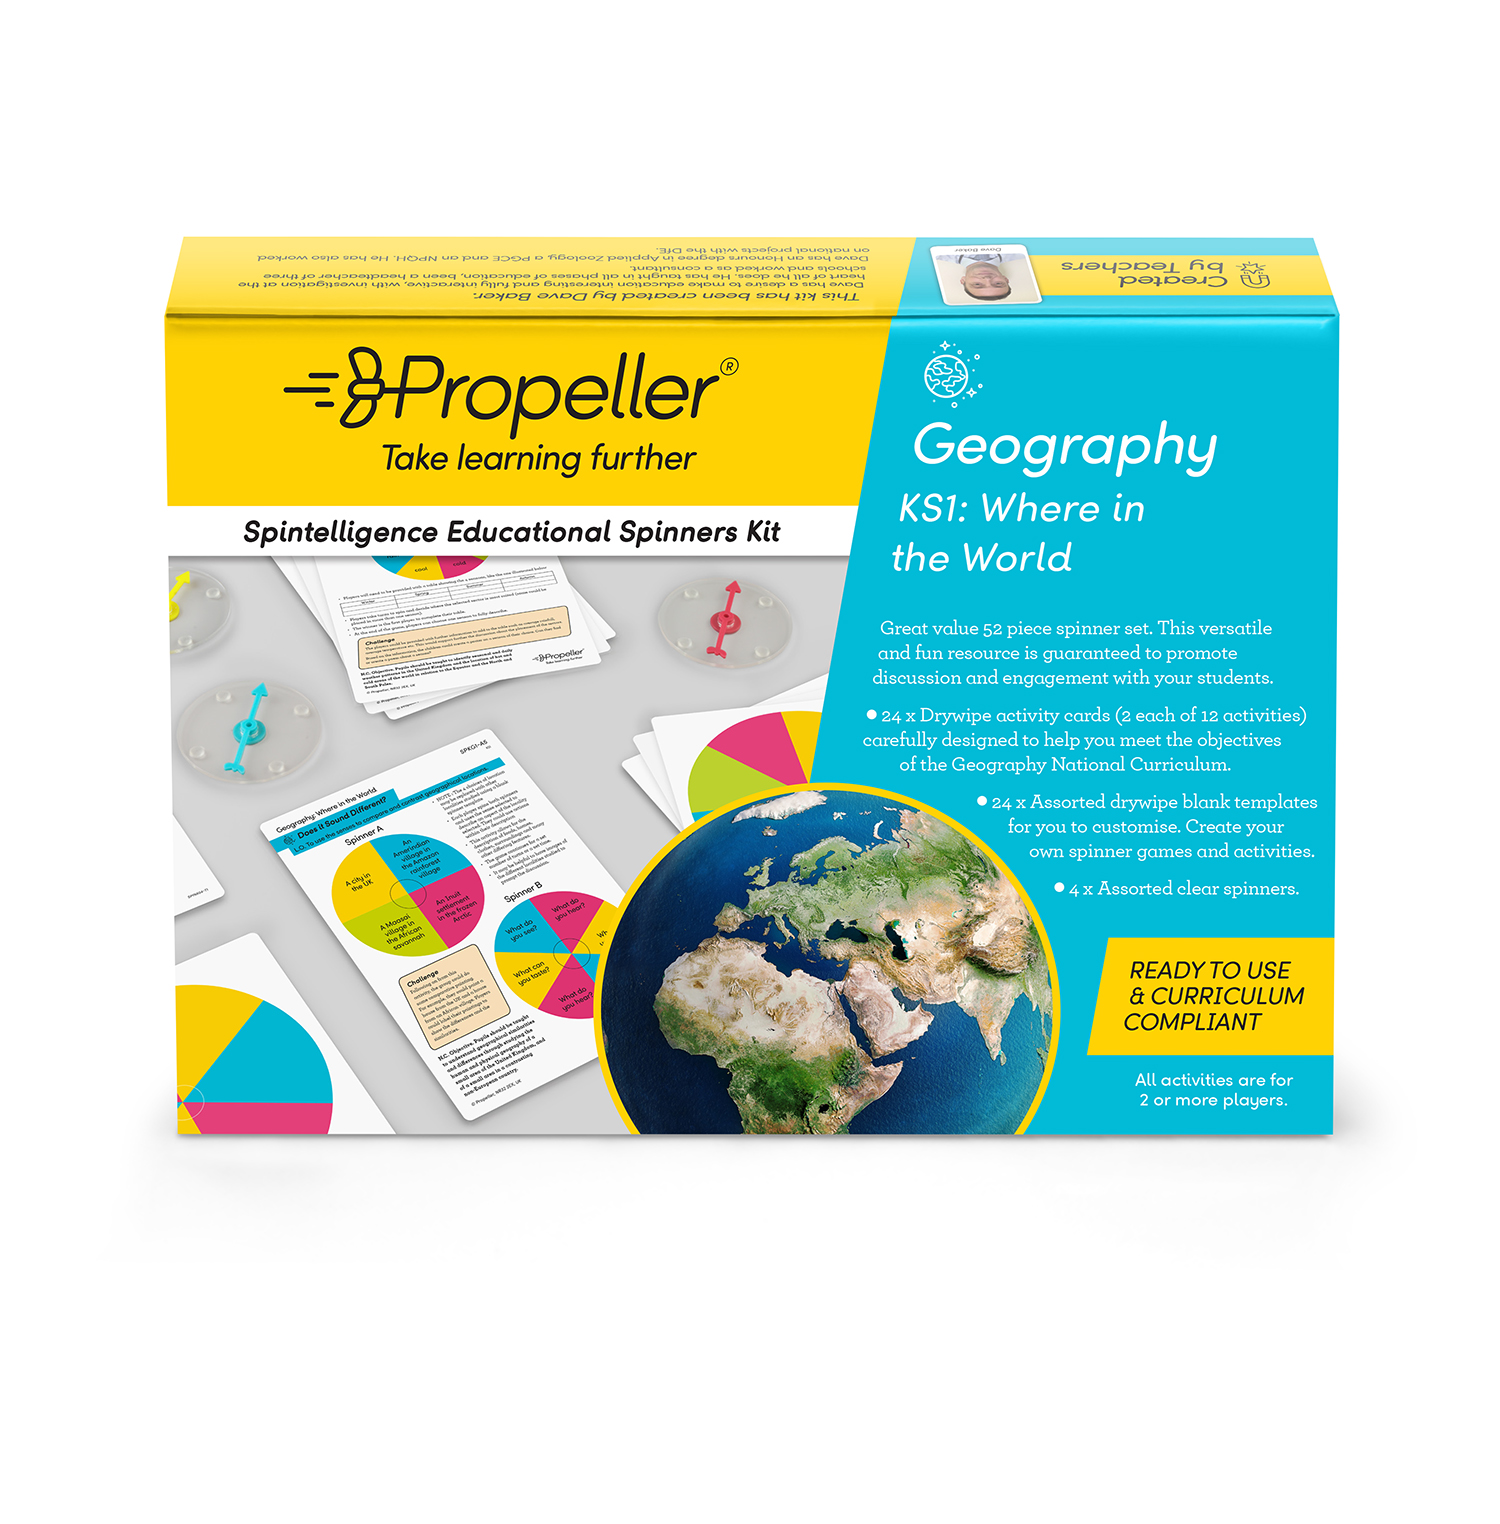 Ks1 where in the world geography spinner kit propeller education spkg1 ks2 where in the world cover freerunsca Image collections